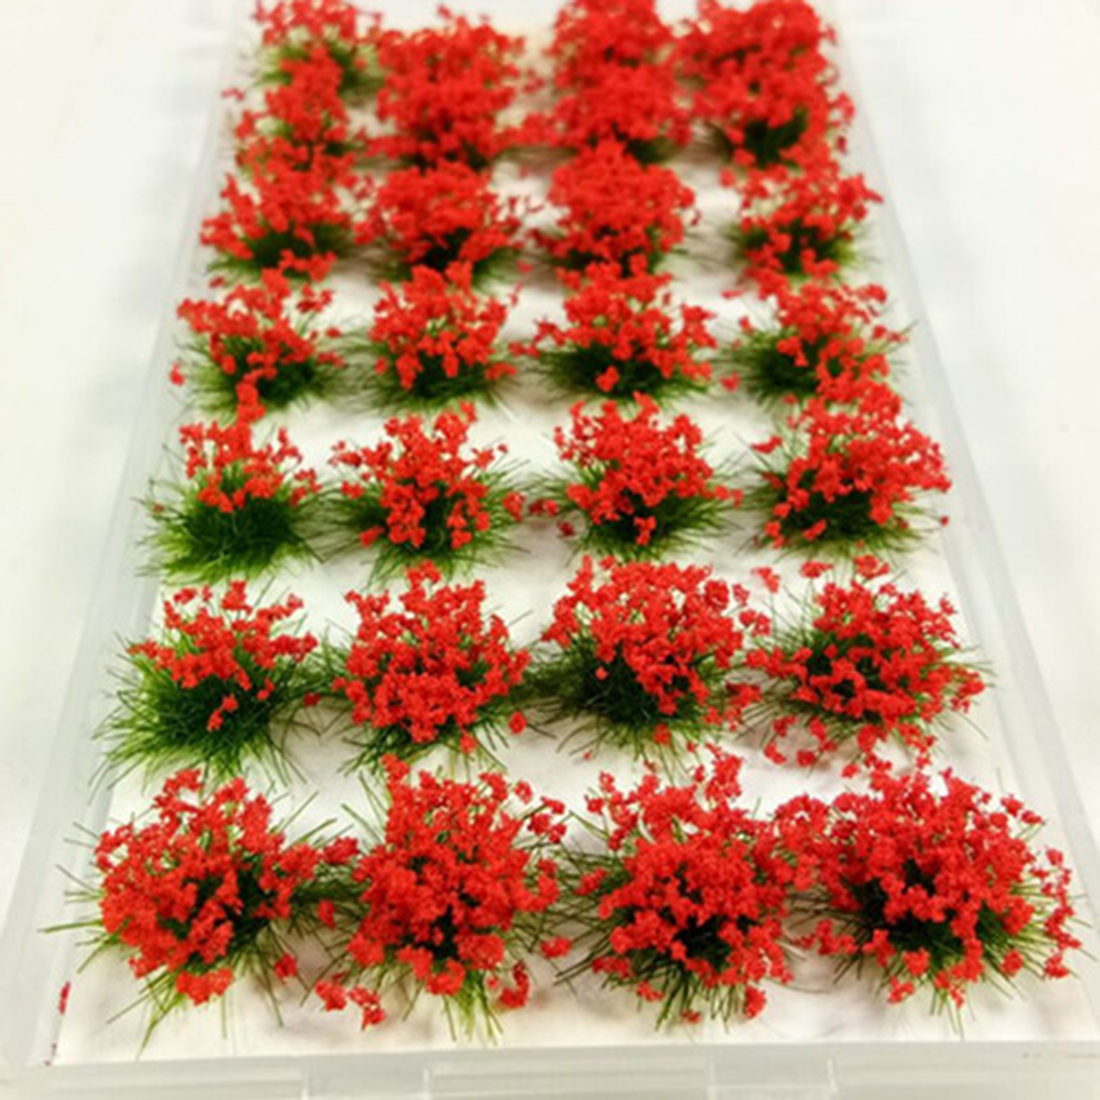 28Pcs Simulation Flower Cluster Flowers Scene Model For <font><b>1</b></font><font><b>:</b></font><font><b>35</b></font>/<font><b>1</b></font><font><b>:</b></font>48/<font><b>1</b></font><font><b>:</b></font>72/<font><b>1</b></font><font><b>:</b></font>87 Scale Sand Table - Green Leaves + Pink Flowers image